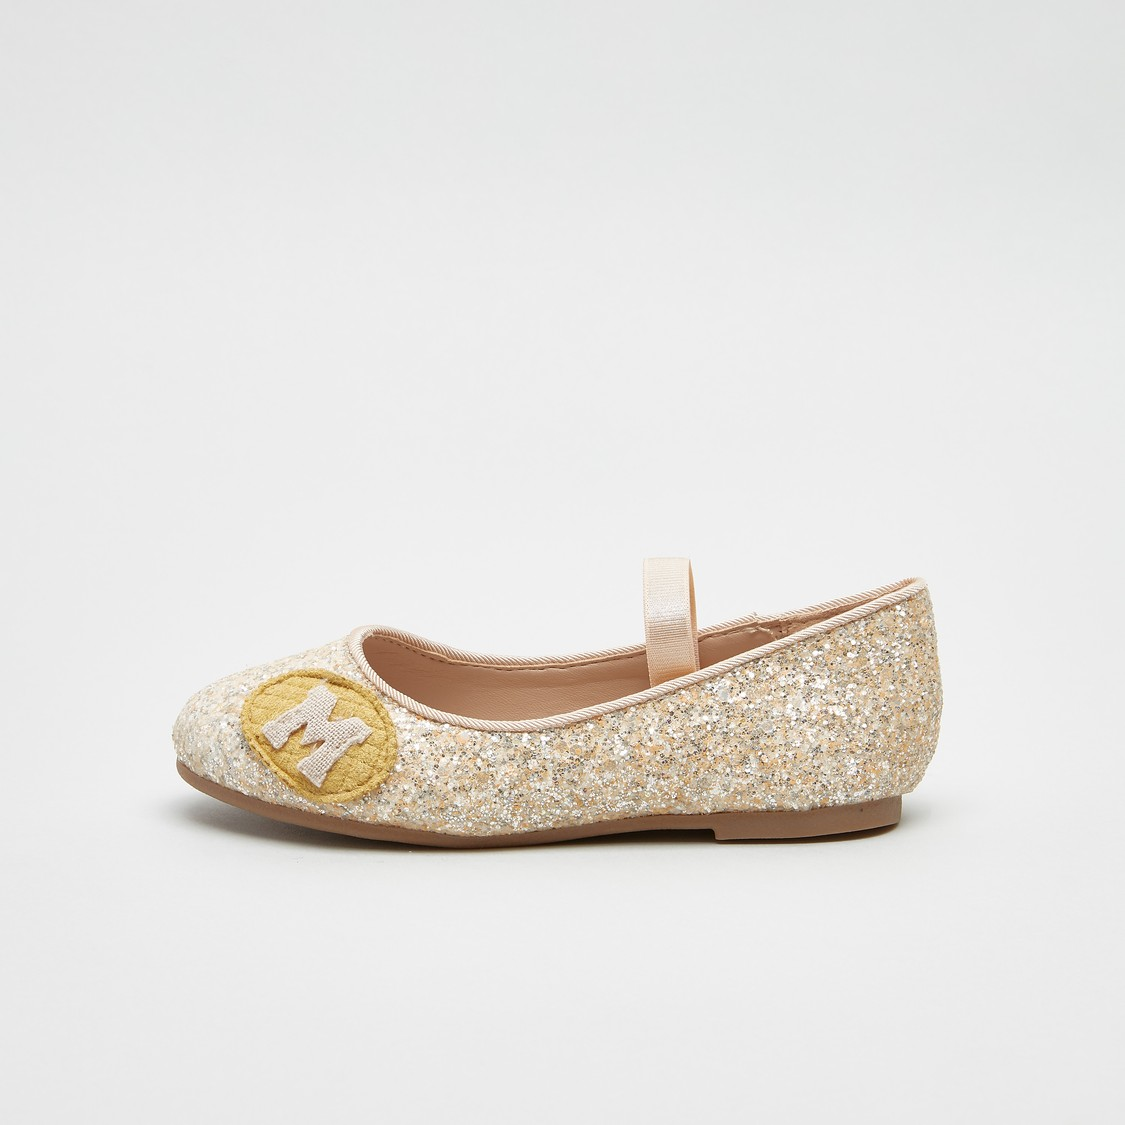 Glitter Detail Mary Jane Shoes with Elasticised Bands